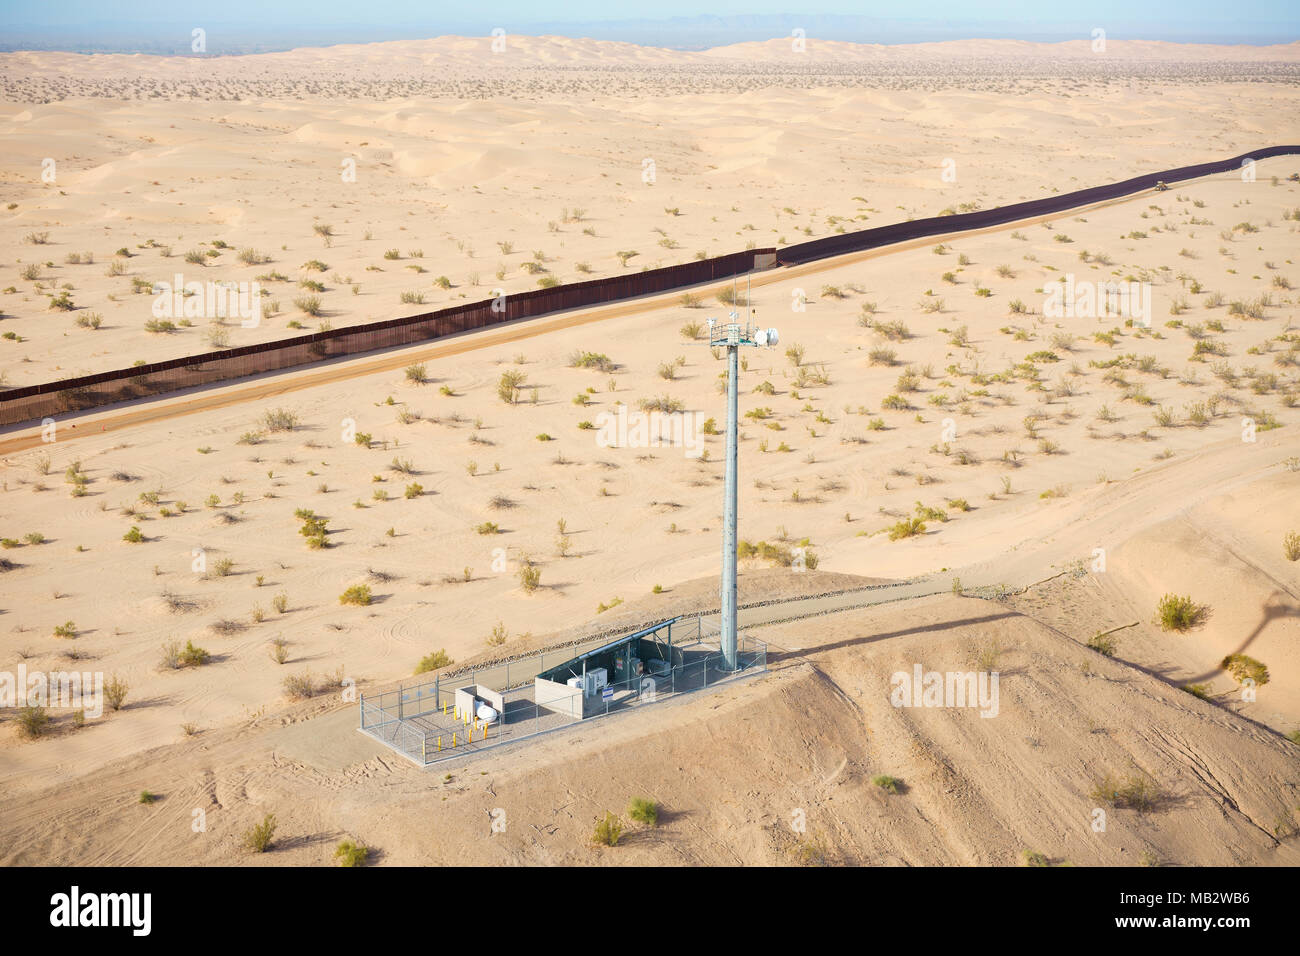 HIGH-TECH EQUIPMENT ON A MOUND USED FOR SURVEILLANCE OF THE MEXICO - US BORDER (aerial view). Algodones Sand Dunes in the Sonoran Desert. - Stock Image